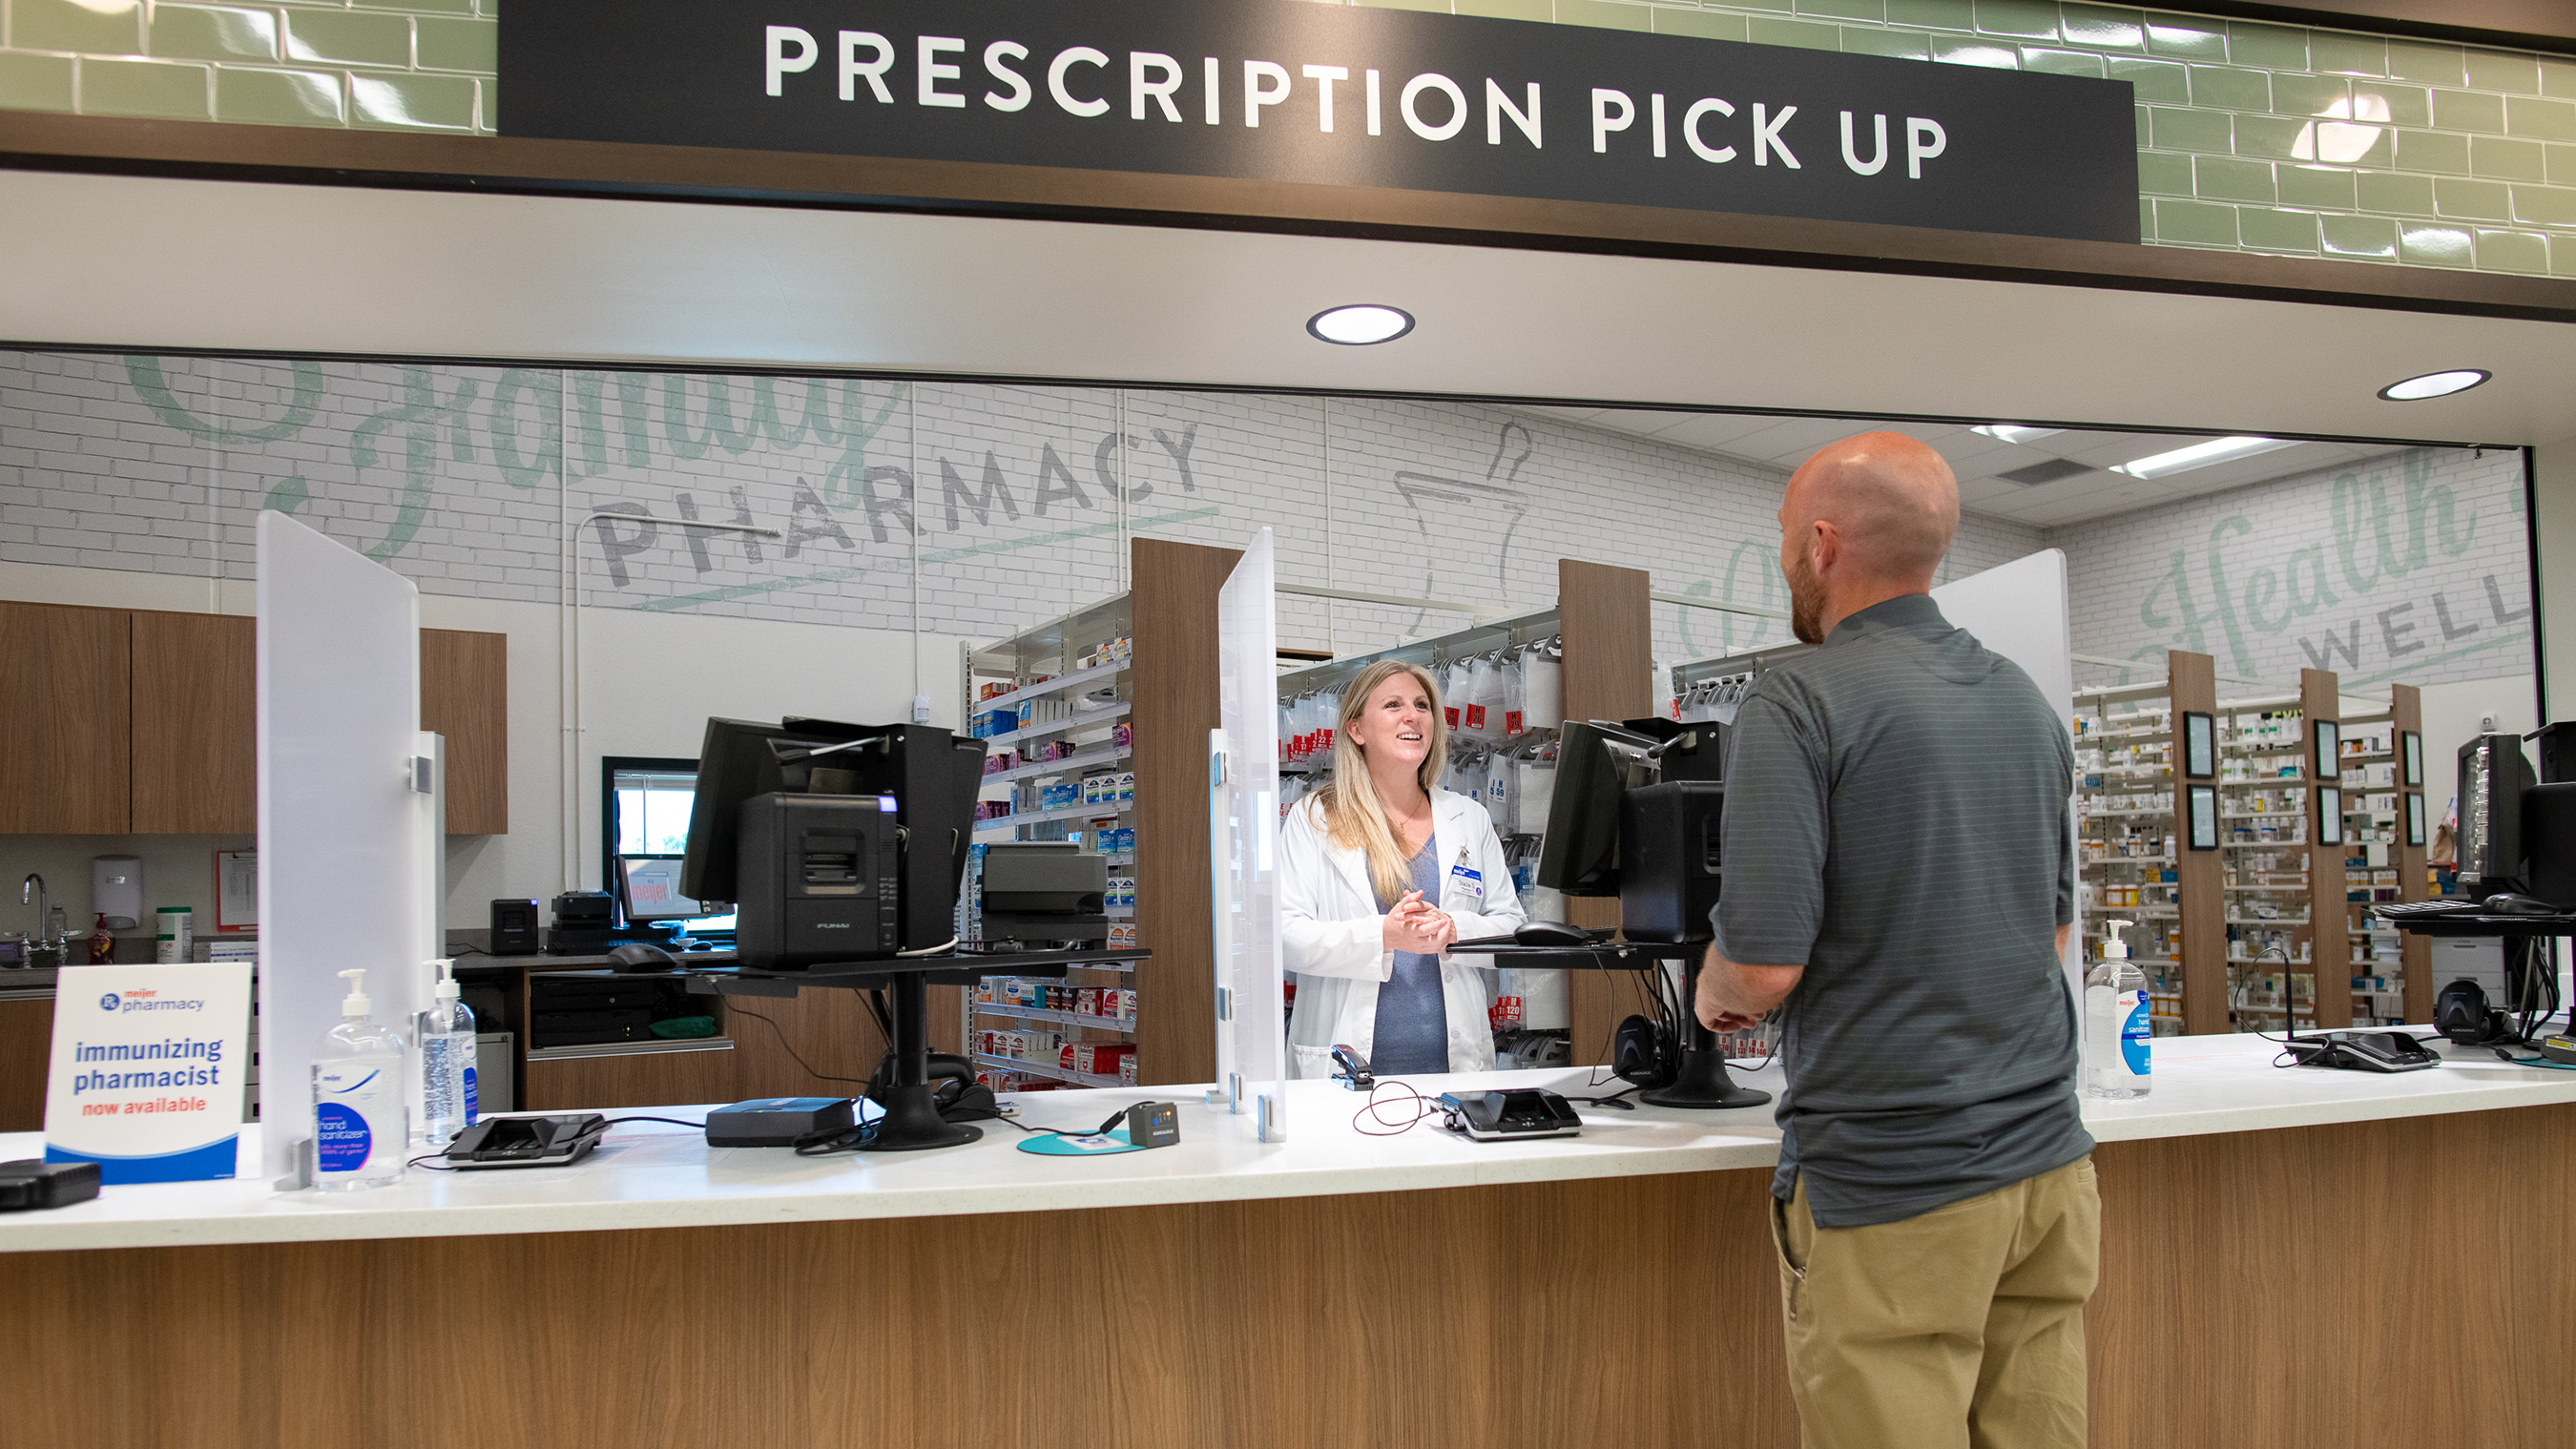 For more information about the Free Prescription Drug program, visit any one of 246 Meijer Pharmacies in Michigan, Ohio, Indiana, Illinois, Wisconsin and Kentucky.